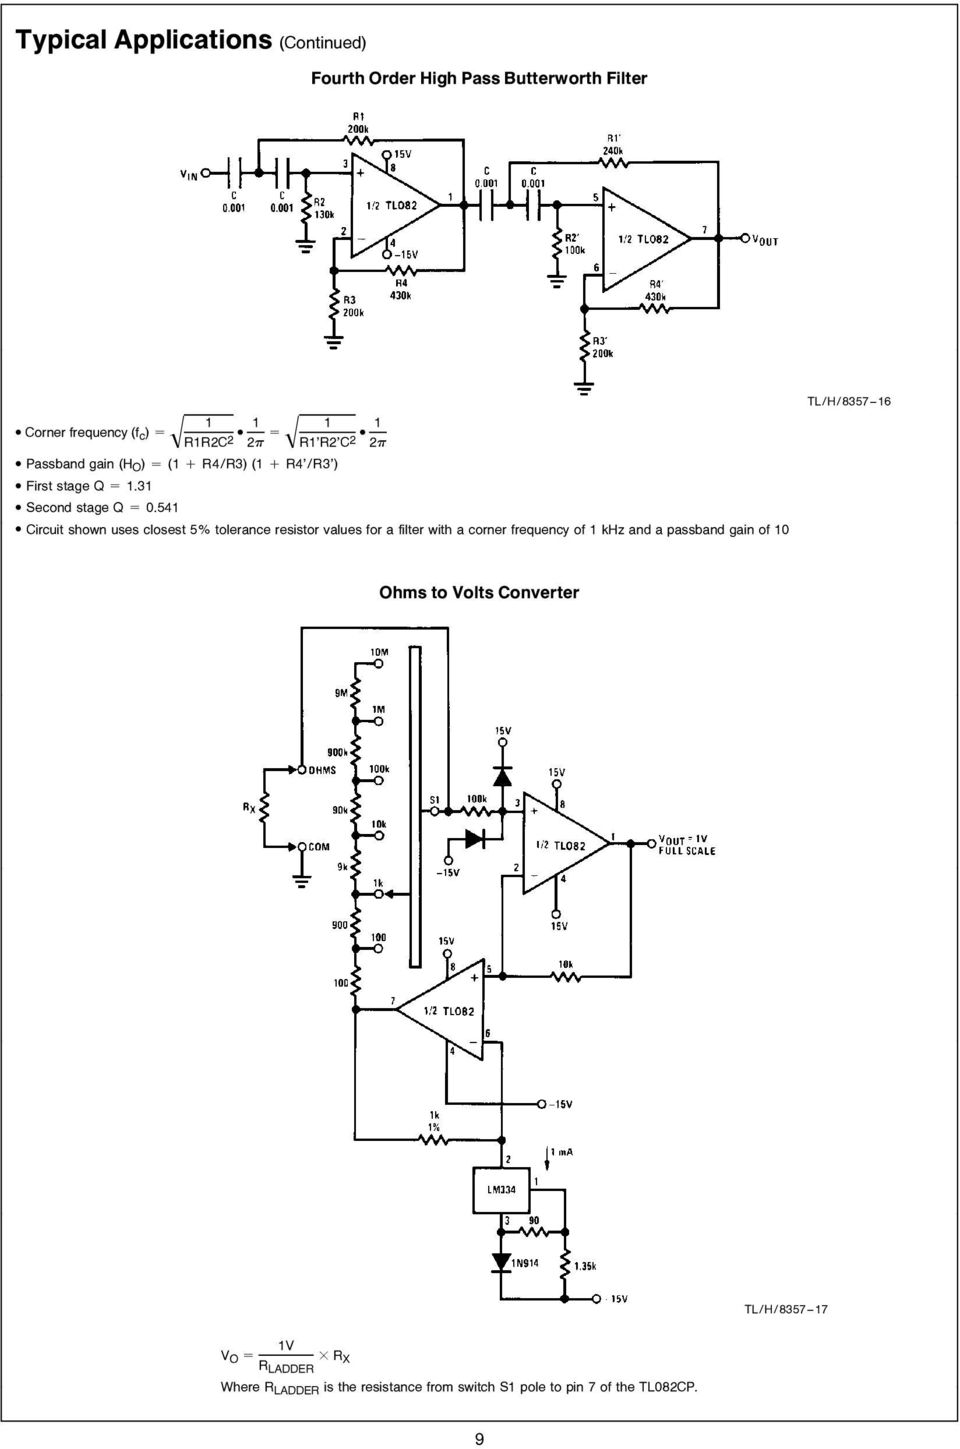 Tl082 Wide Bandwidth Dual Jfet Input Operational Amplifier Pdf Lm359 1mhz Balanced Line Driver Closest 5 Tolerance Resistor Values For A Filter With Corner Frequency Of 1 Khz